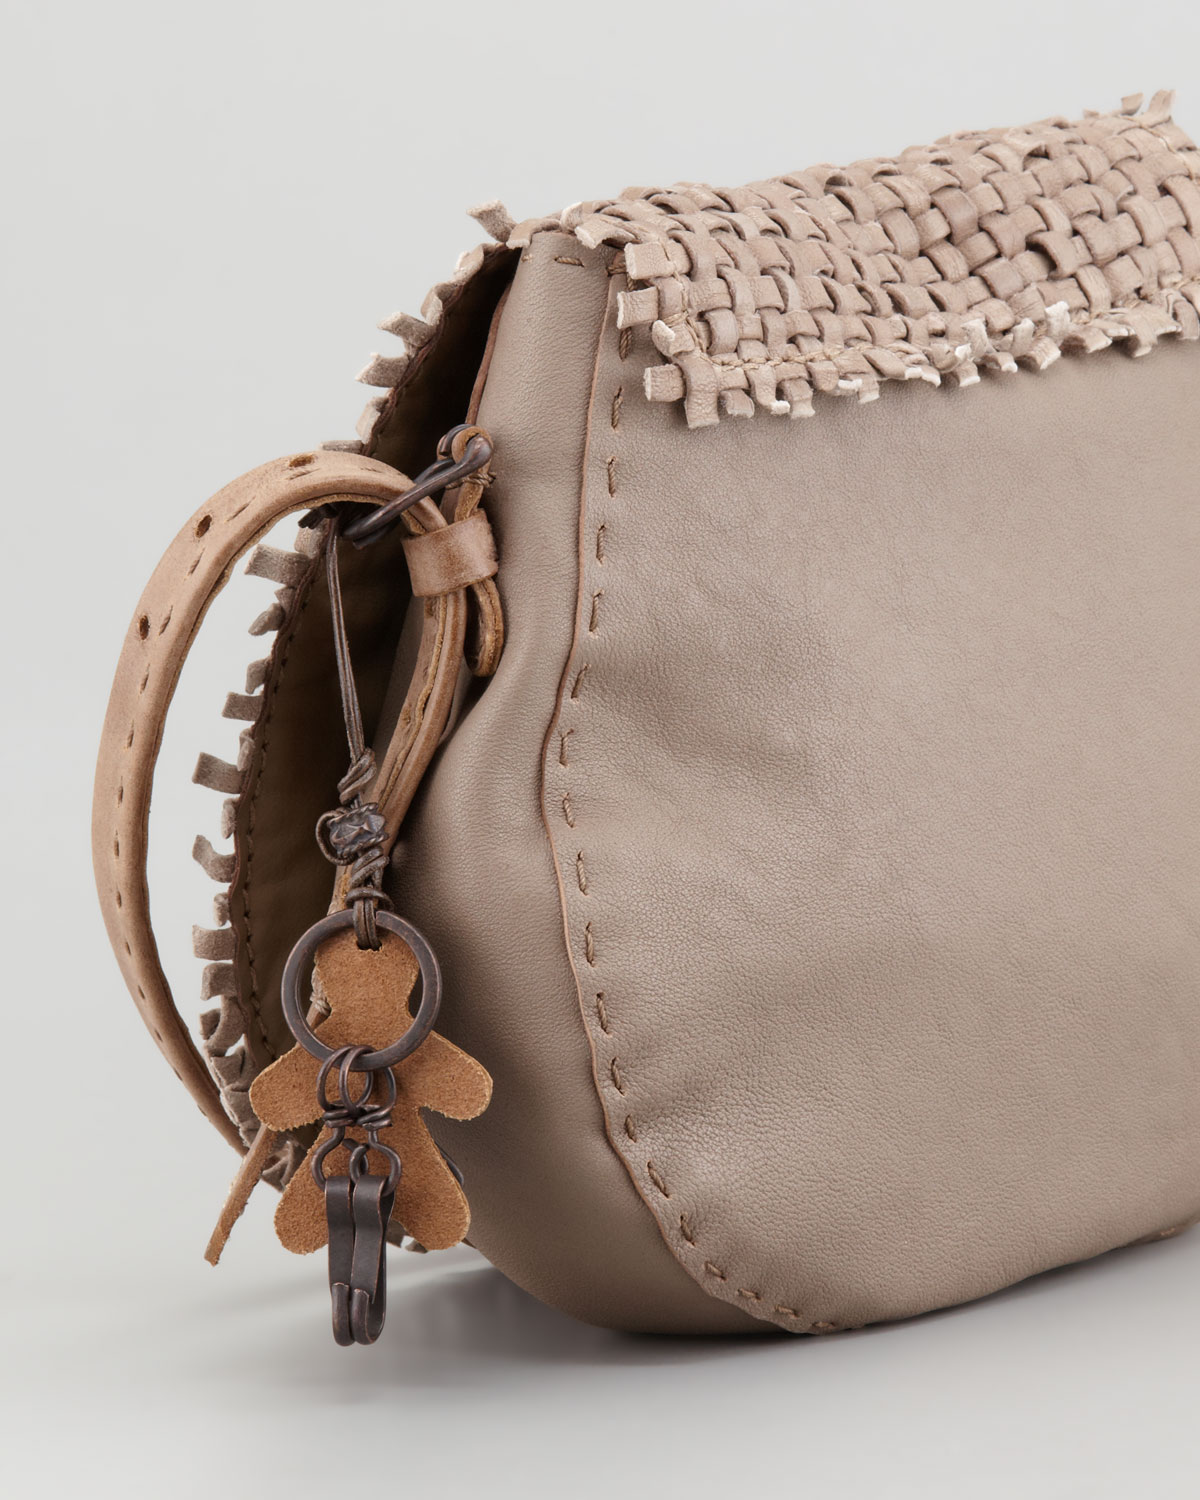 e3fdcd631 Henry Beguelin Sella Woven Leather Crossbody Bag, Taupe | Neiman Marcus